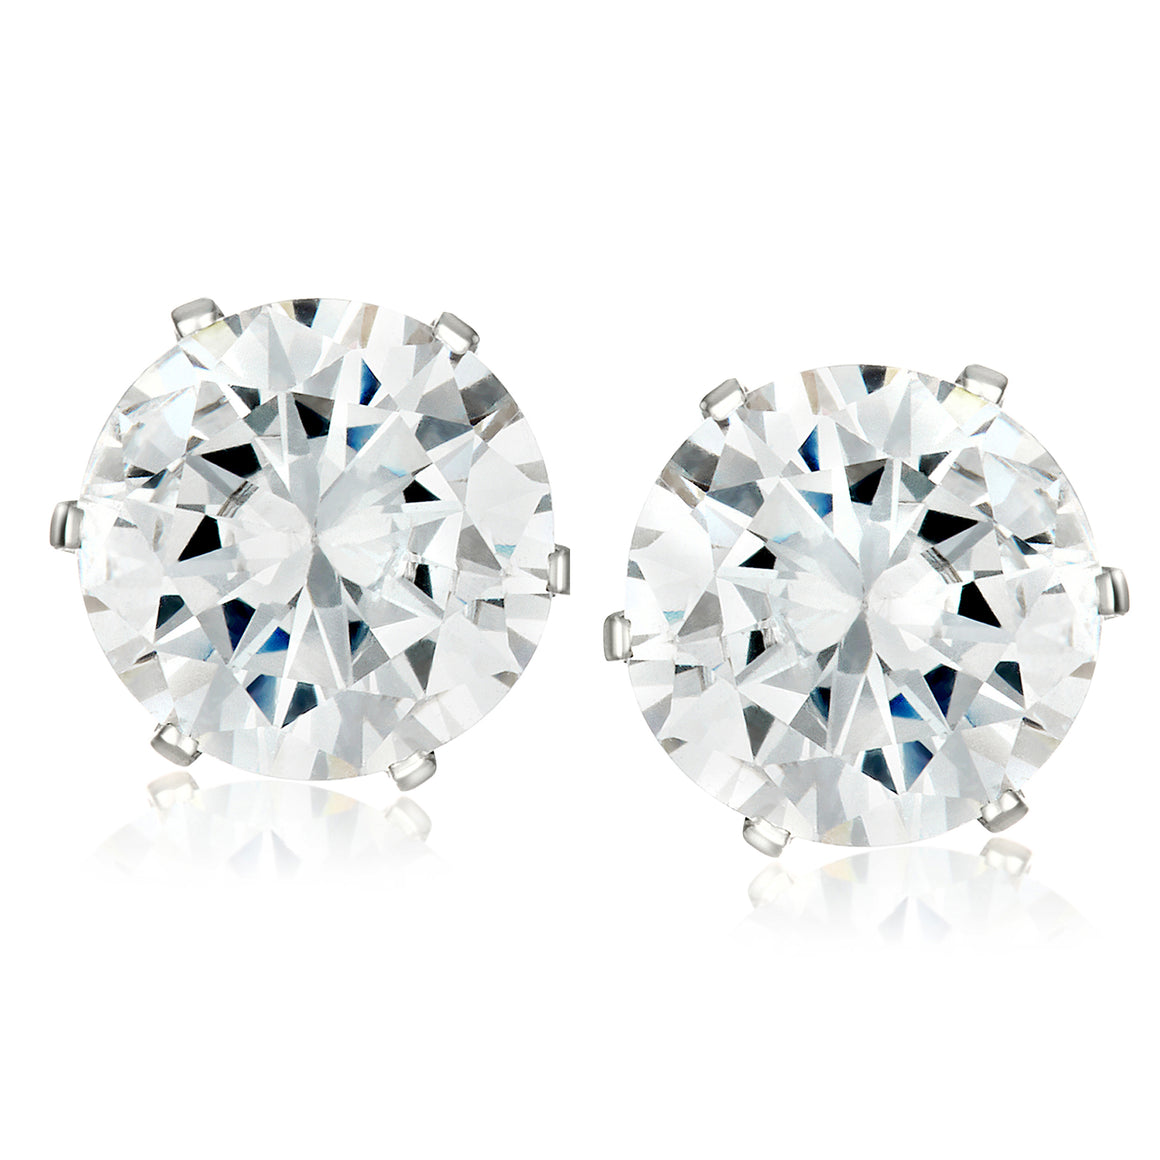 ELYA Women's Polished Prong Set Cubic Zirconia Stud Stainless Steel Earrings